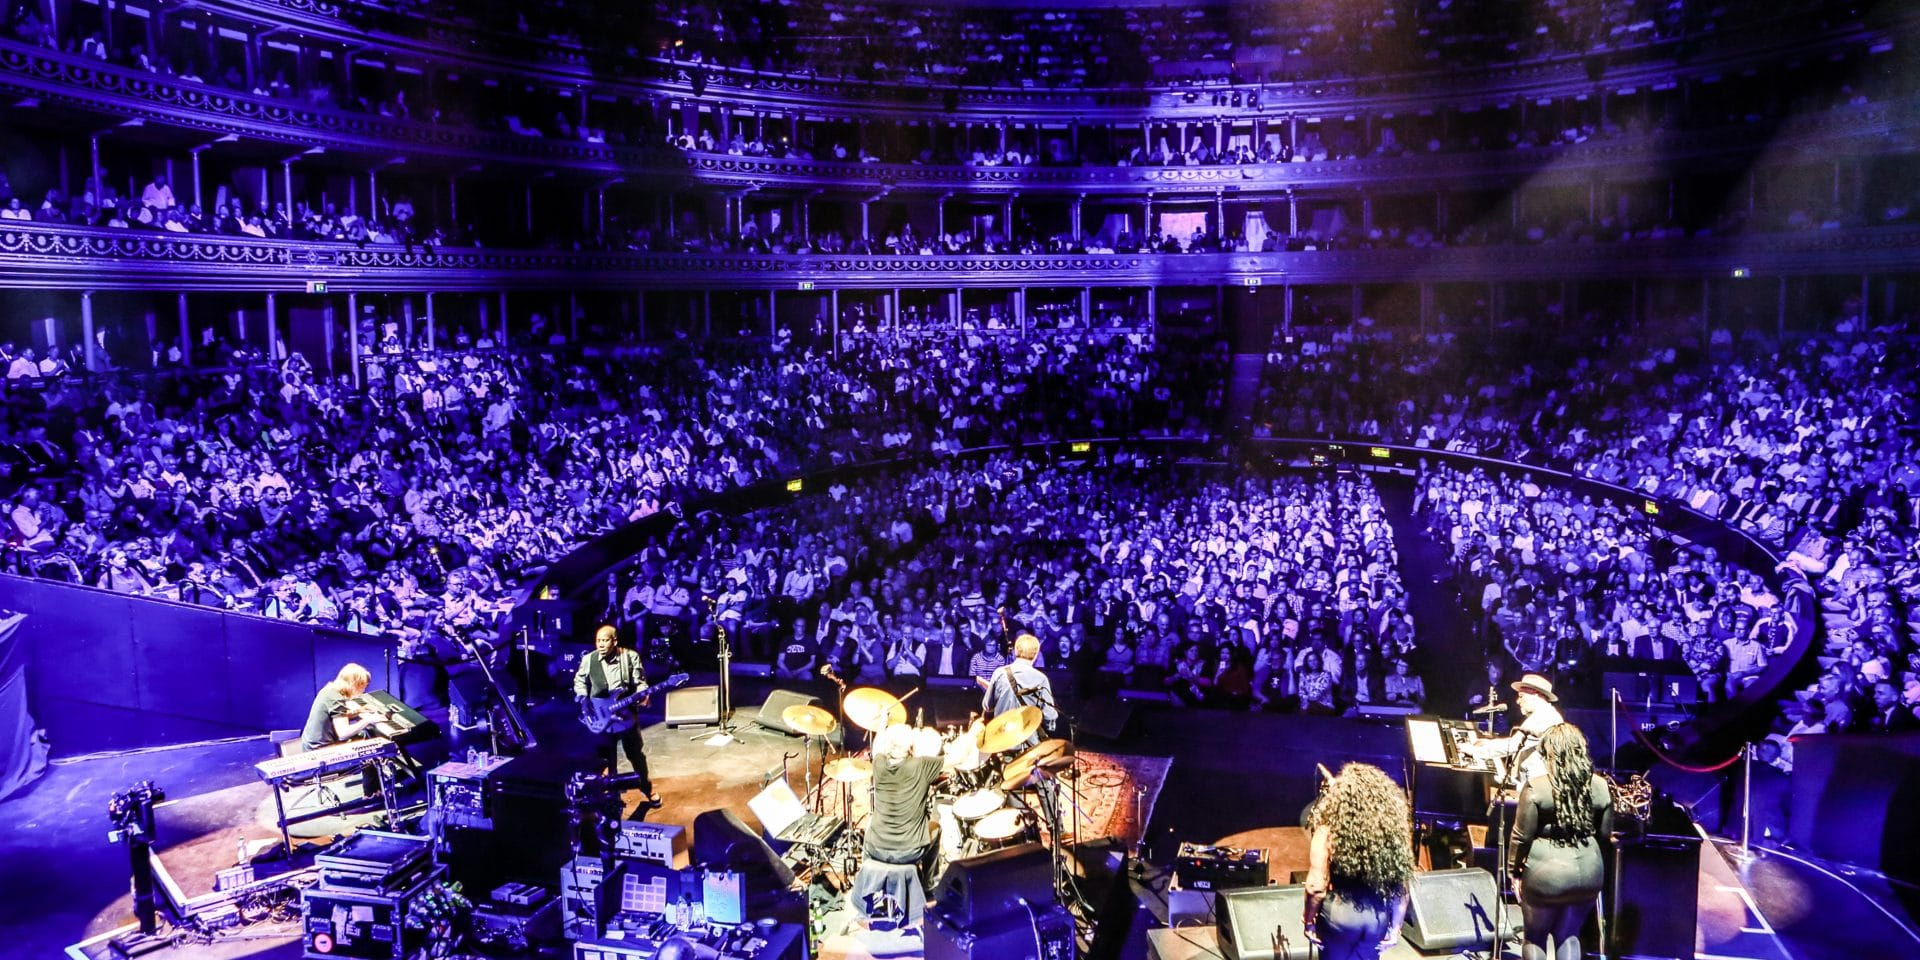 Royal Albert Hall Rich With Storied Box-Office History